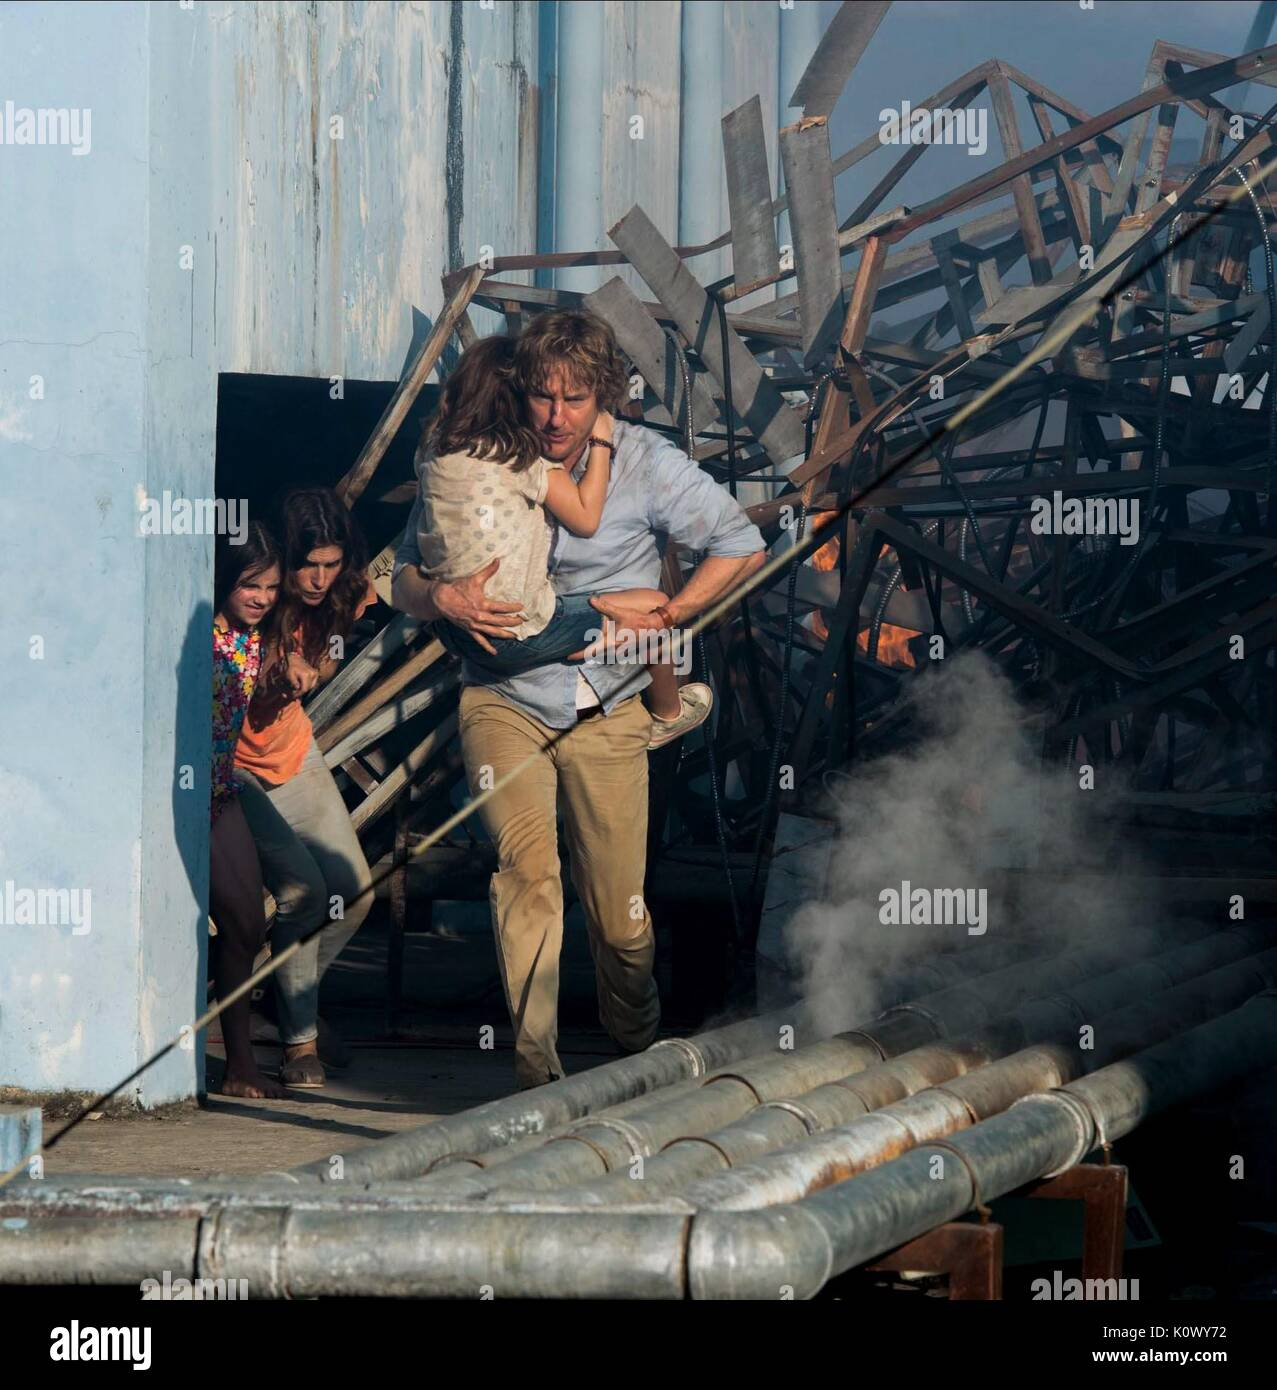 STERLING JERINS LAKE BELL CLAIRE GEARE & OWEN WILSON NO ESCAPE (2015) - Stock Image